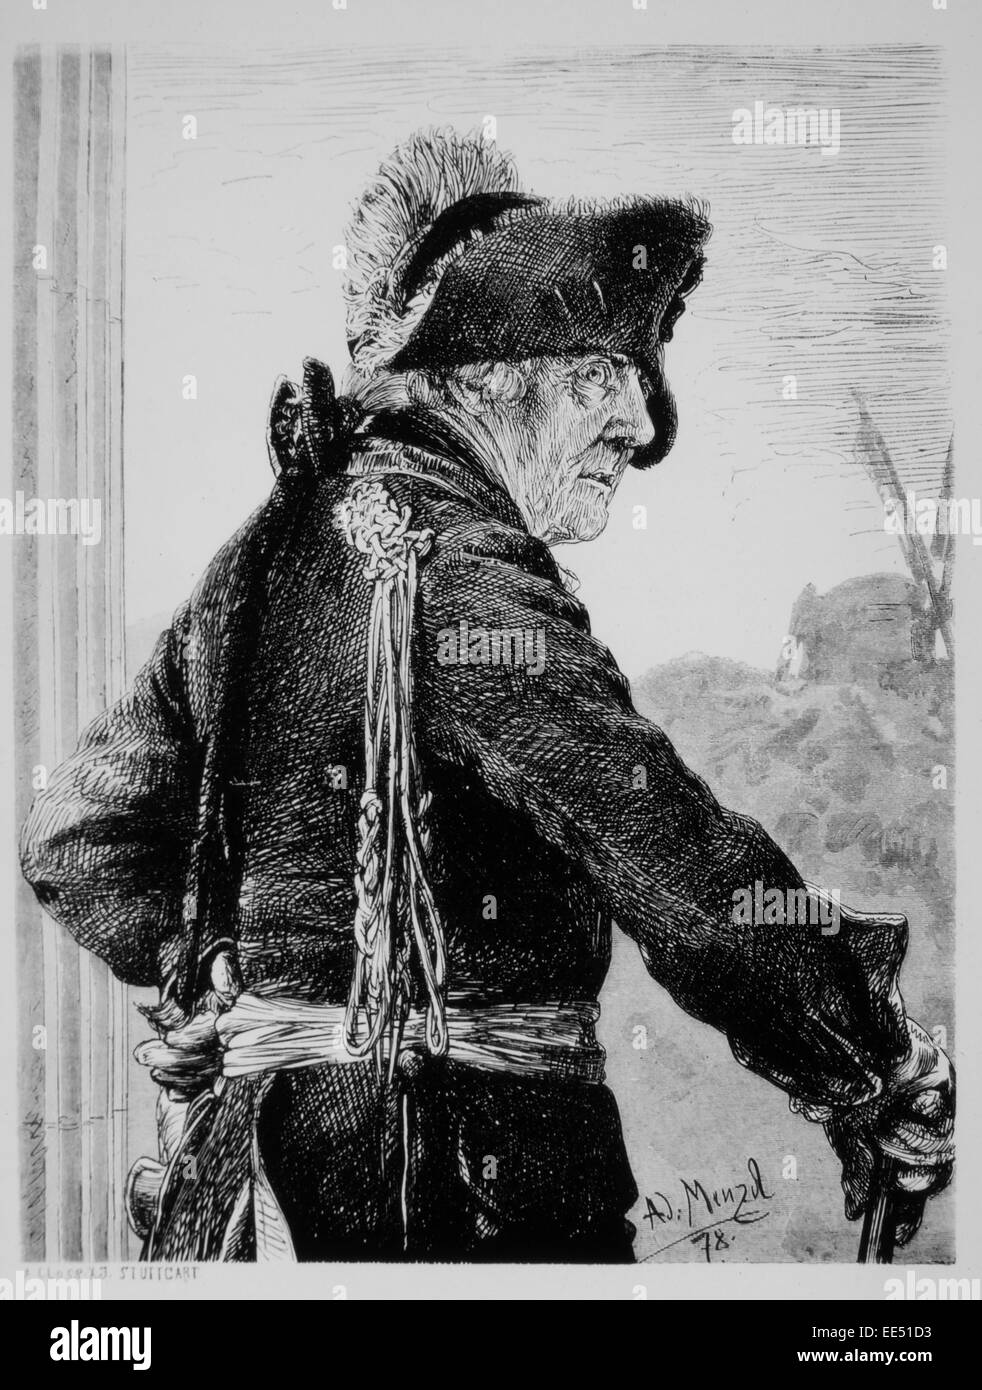 Frederick II, Frederick the Great (1712-86), King of Prussia (1740-86), Portrait, Engraving by A.J. Menzel, 1878 - Stock Image